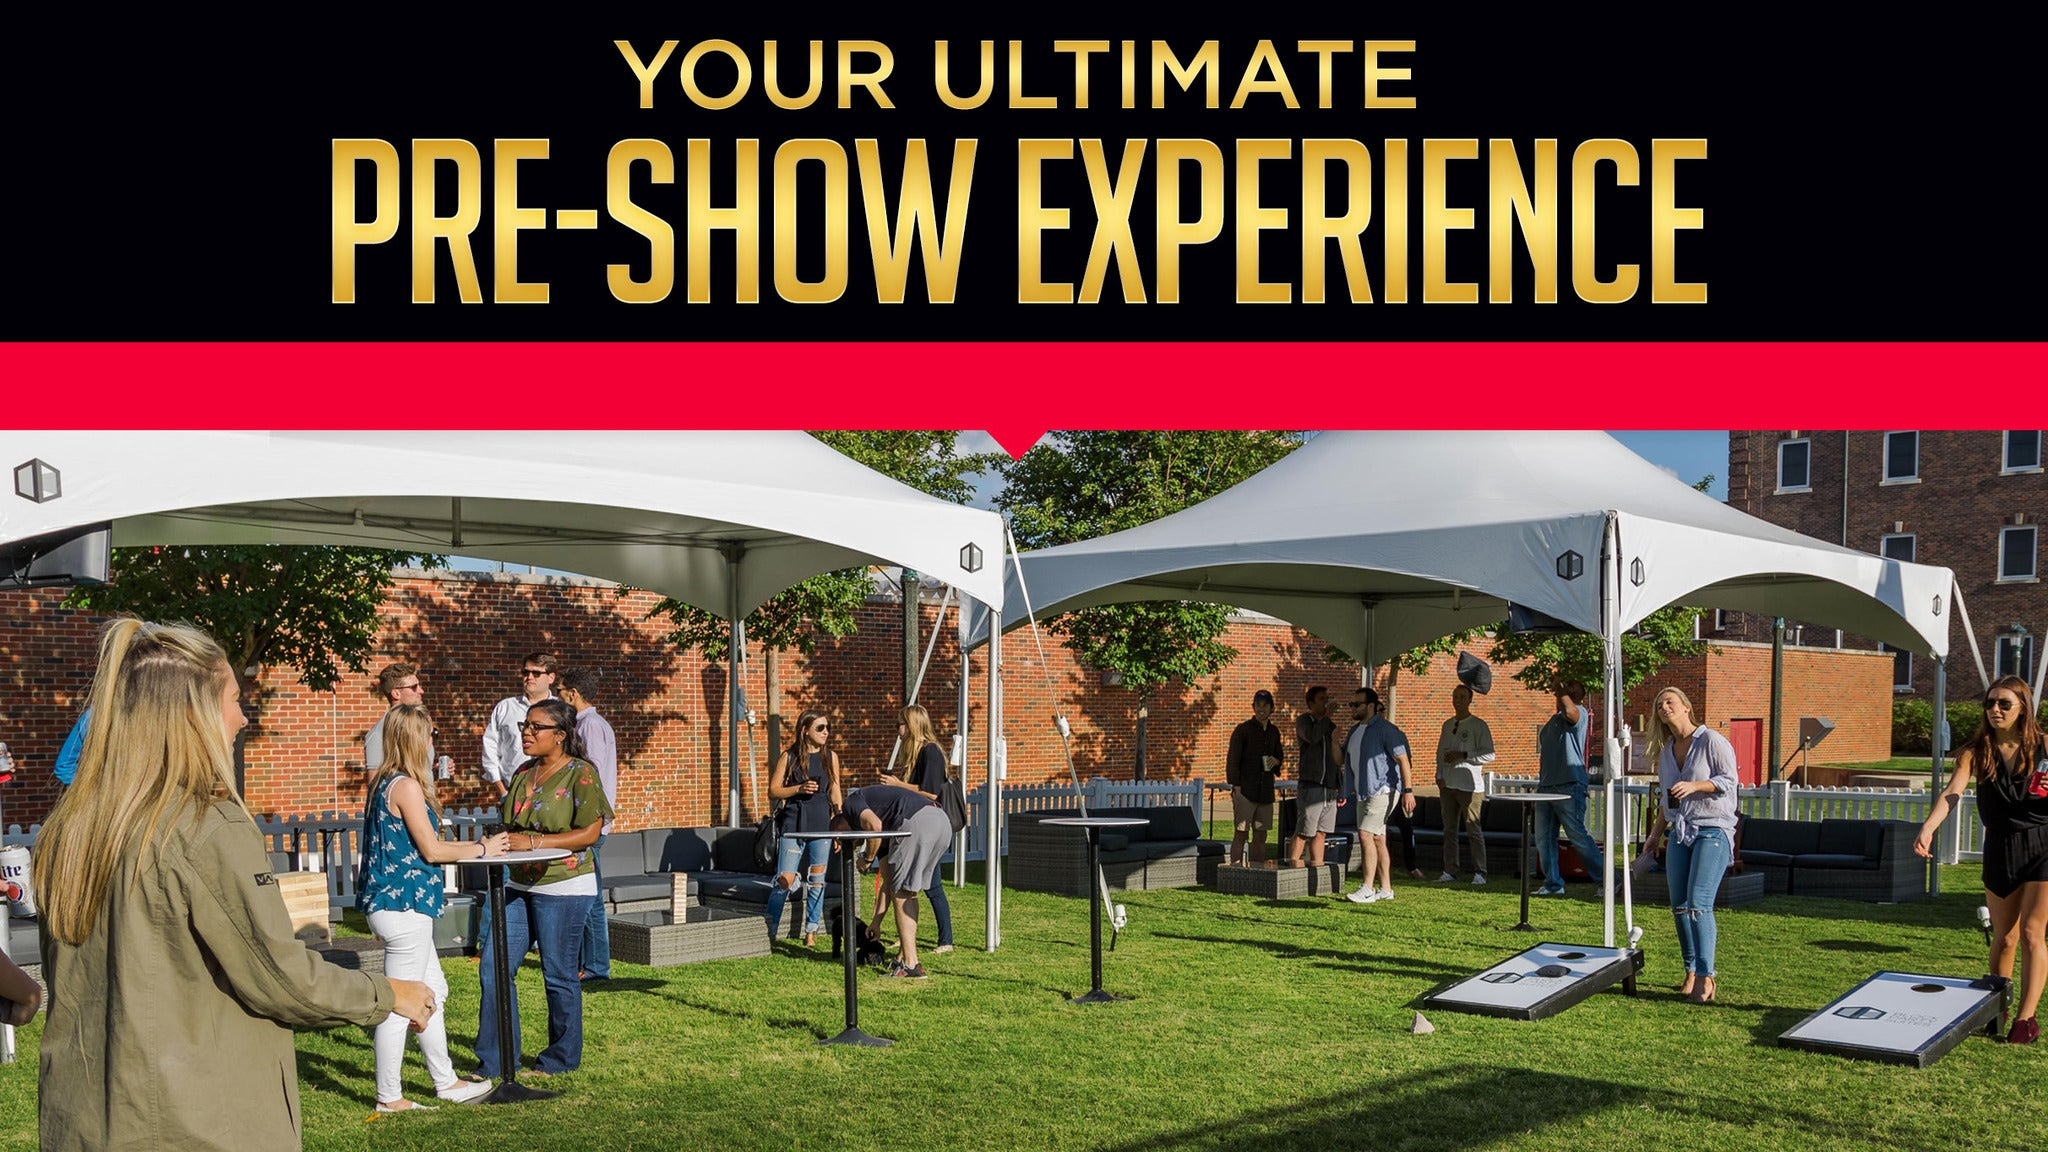 Mattress Firm Amp Tailgate Experience - PARAMORE- NOT A CONCERT TICKET